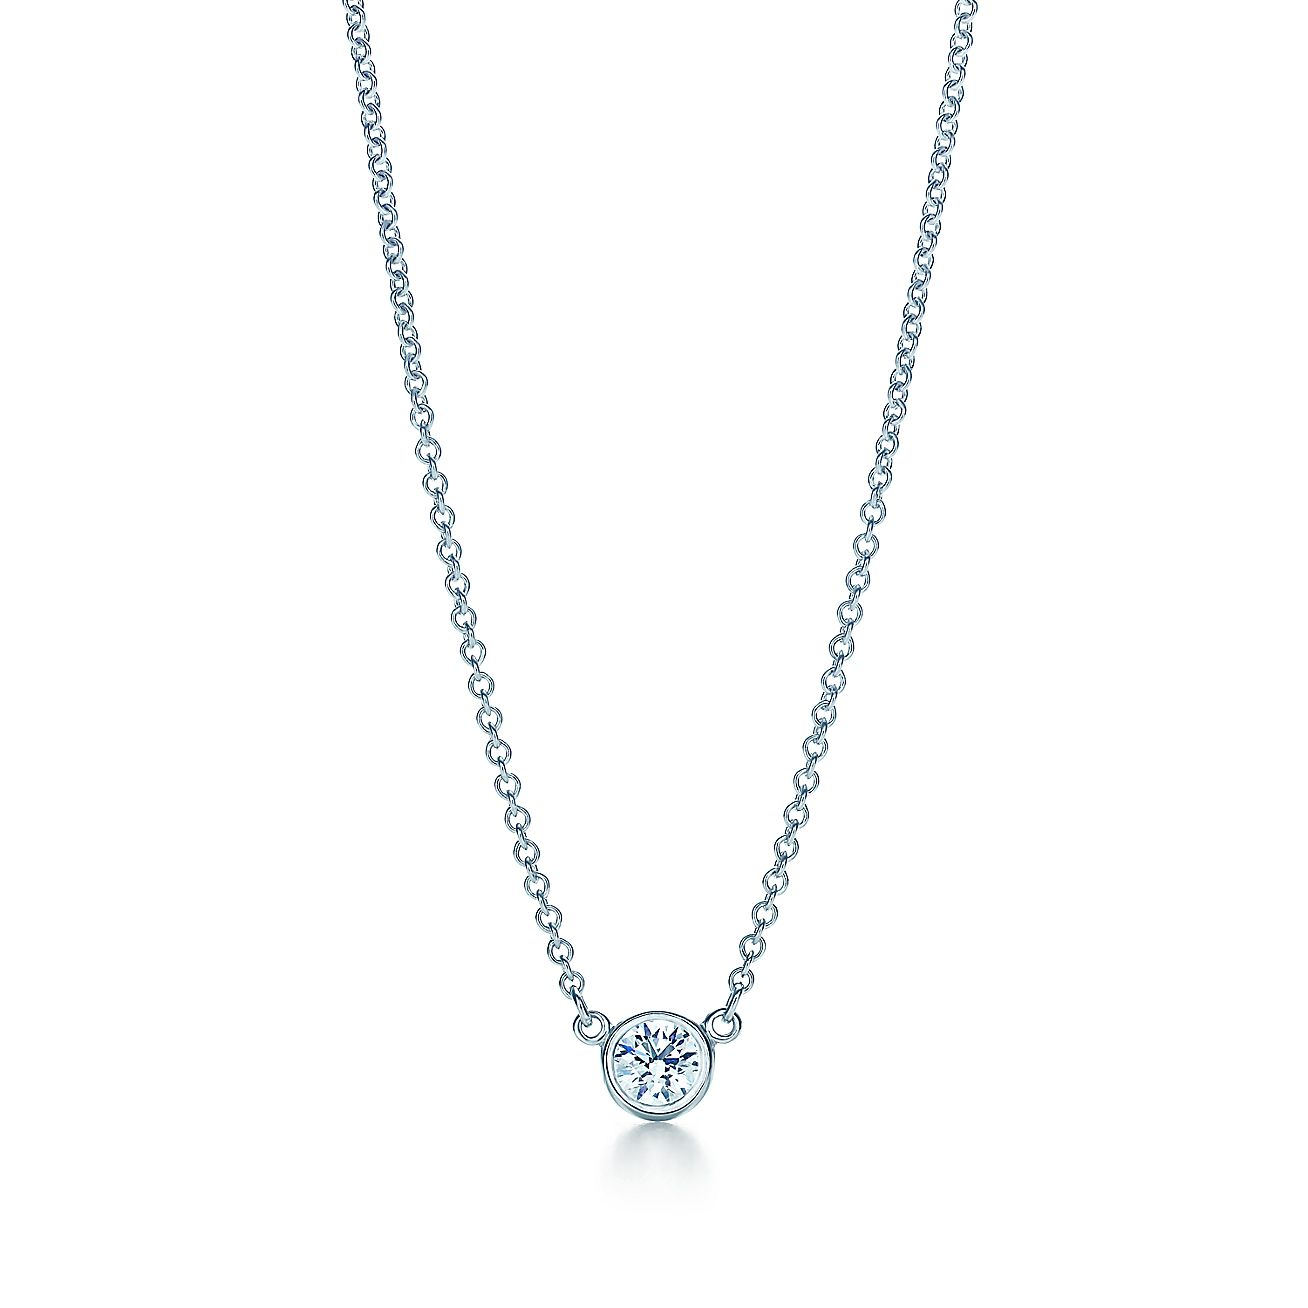 Elsa peretti diamonds by the yard pendant in platinum 16 for Diamonds by the yard ring